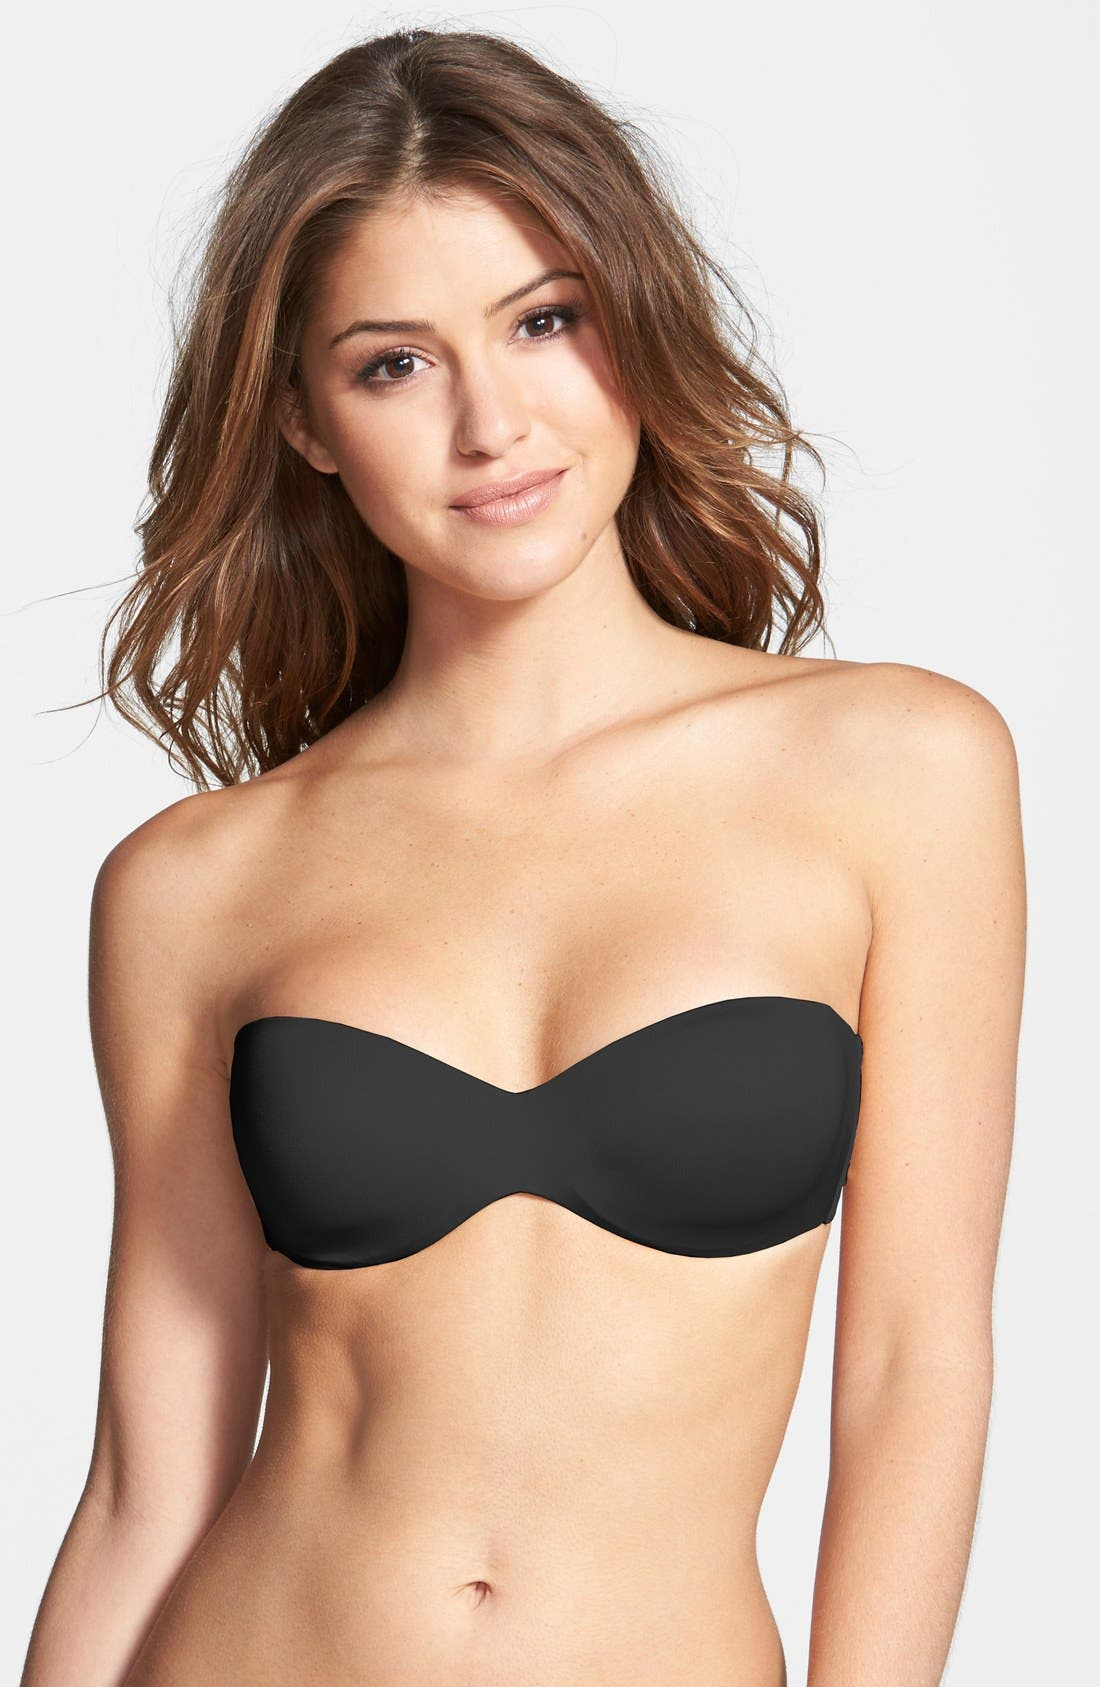 Alternate Image 1 Selected - Cosabella 'Marni' Convertible Underwire Bra